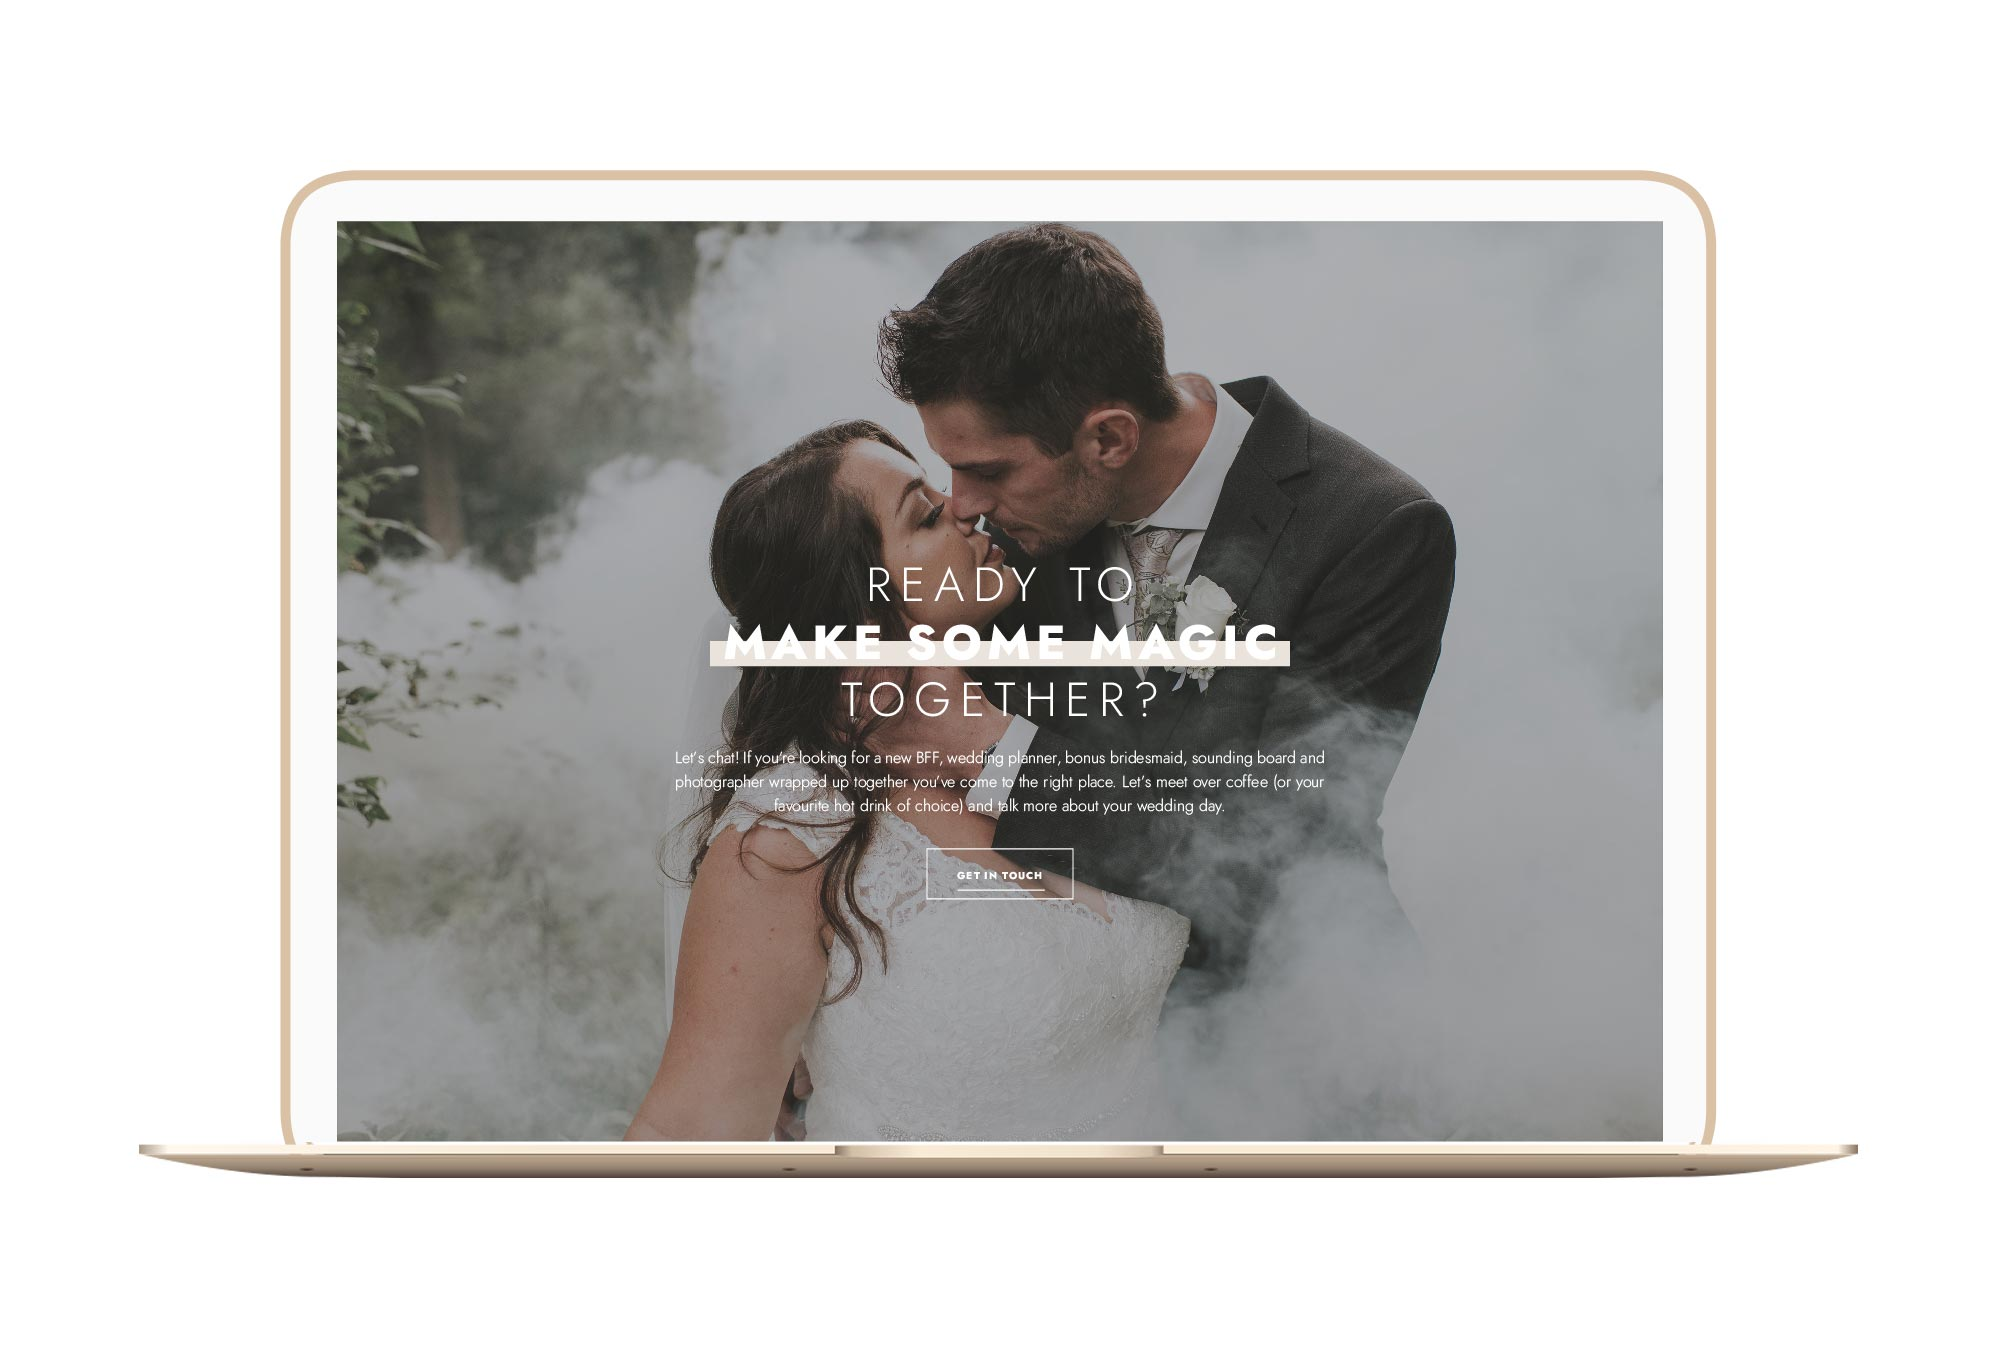 Tiffany Marie Photography Winnipeg Website Design Branding Laptop Flat